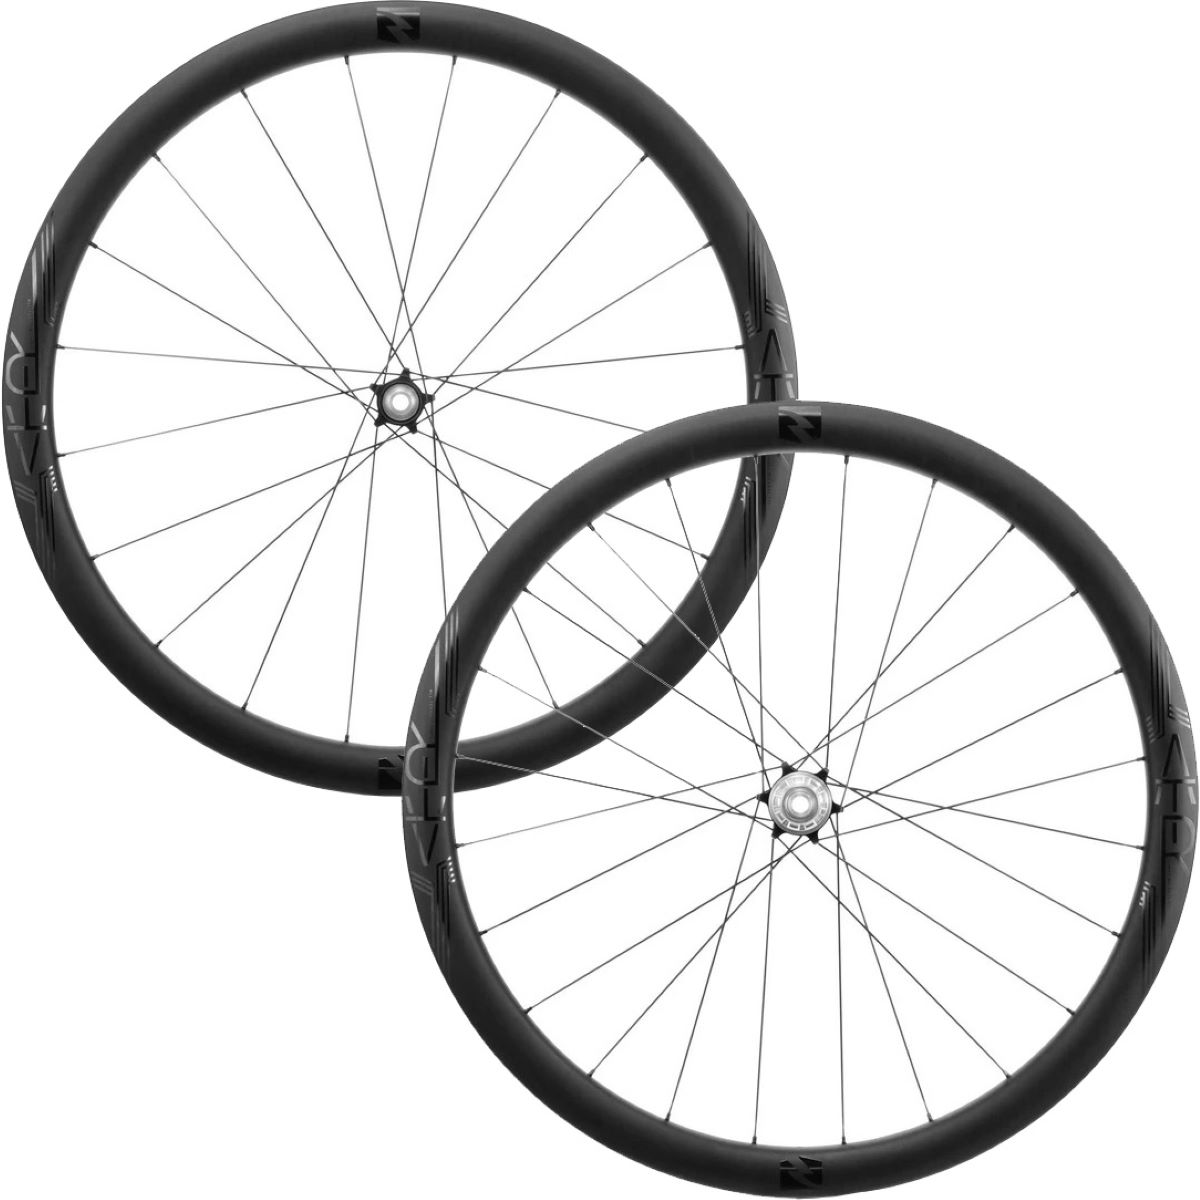 Reynolds Reynolds ATR Black Label Carbon Disc Gravel Wheelset   Wheel Sets